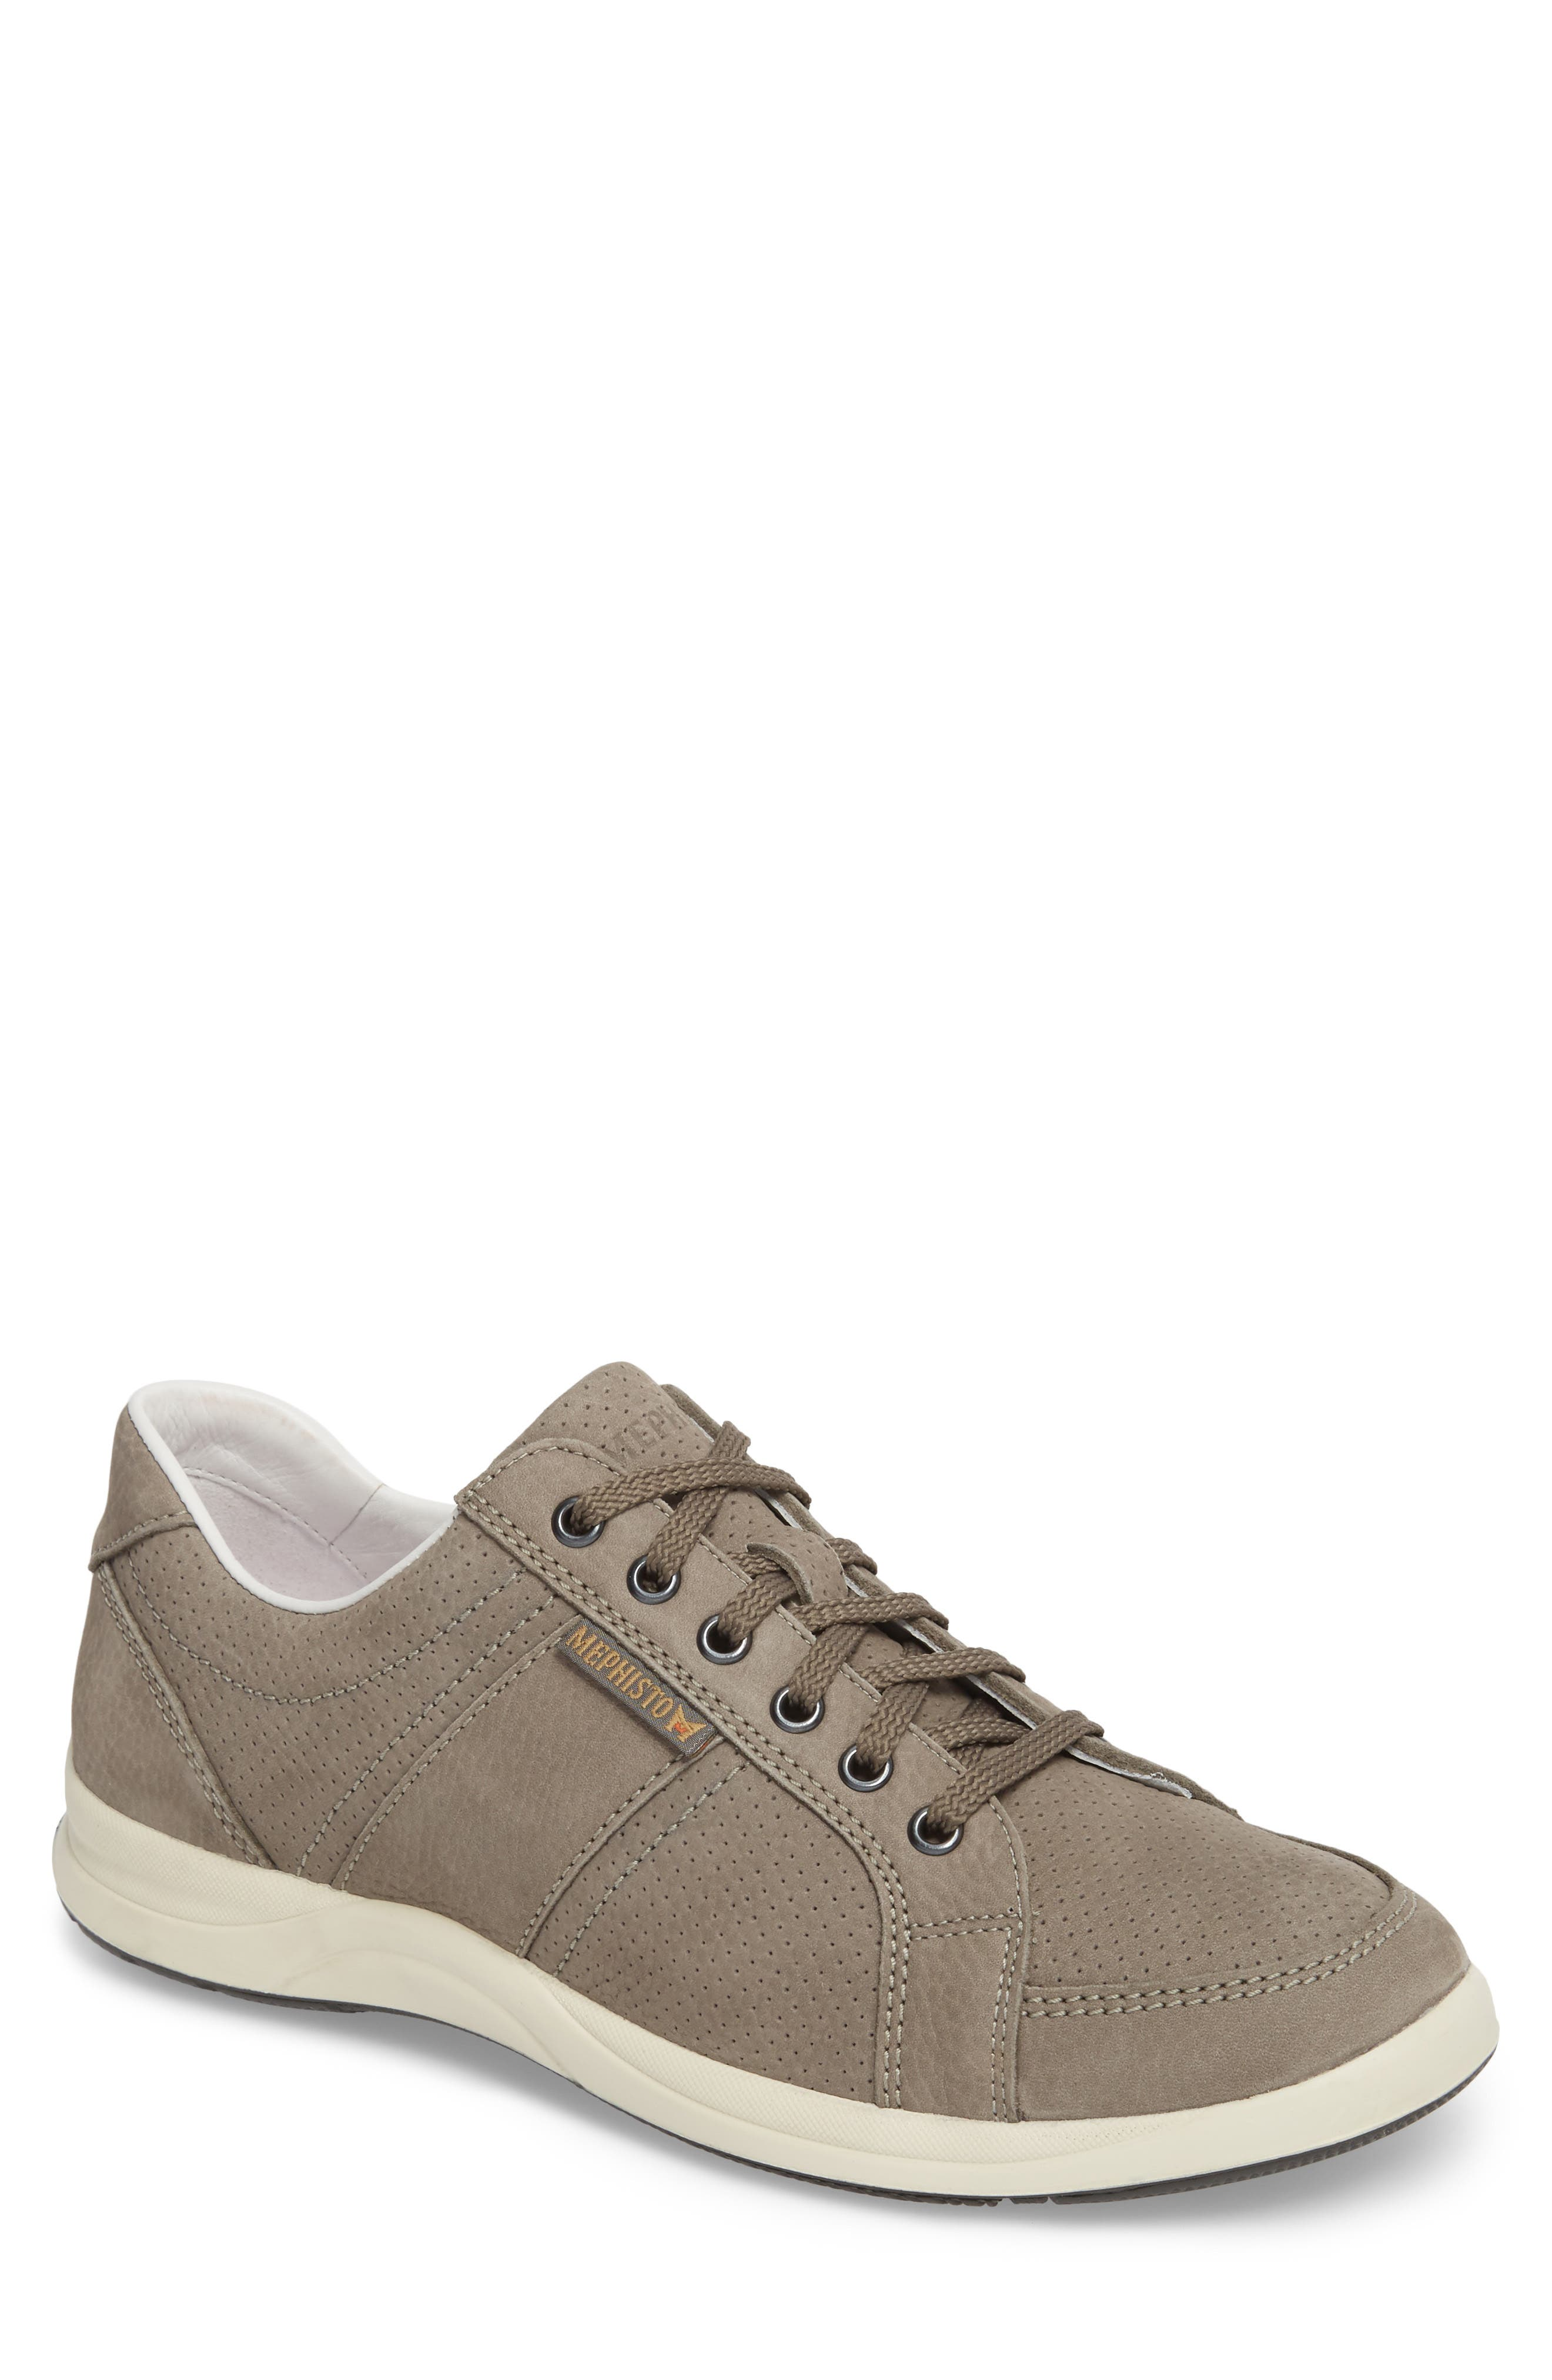 MEPHISTO, 'Hero' Perforated Sneaker, Main thumbnail 1, color, GREY LEATHER